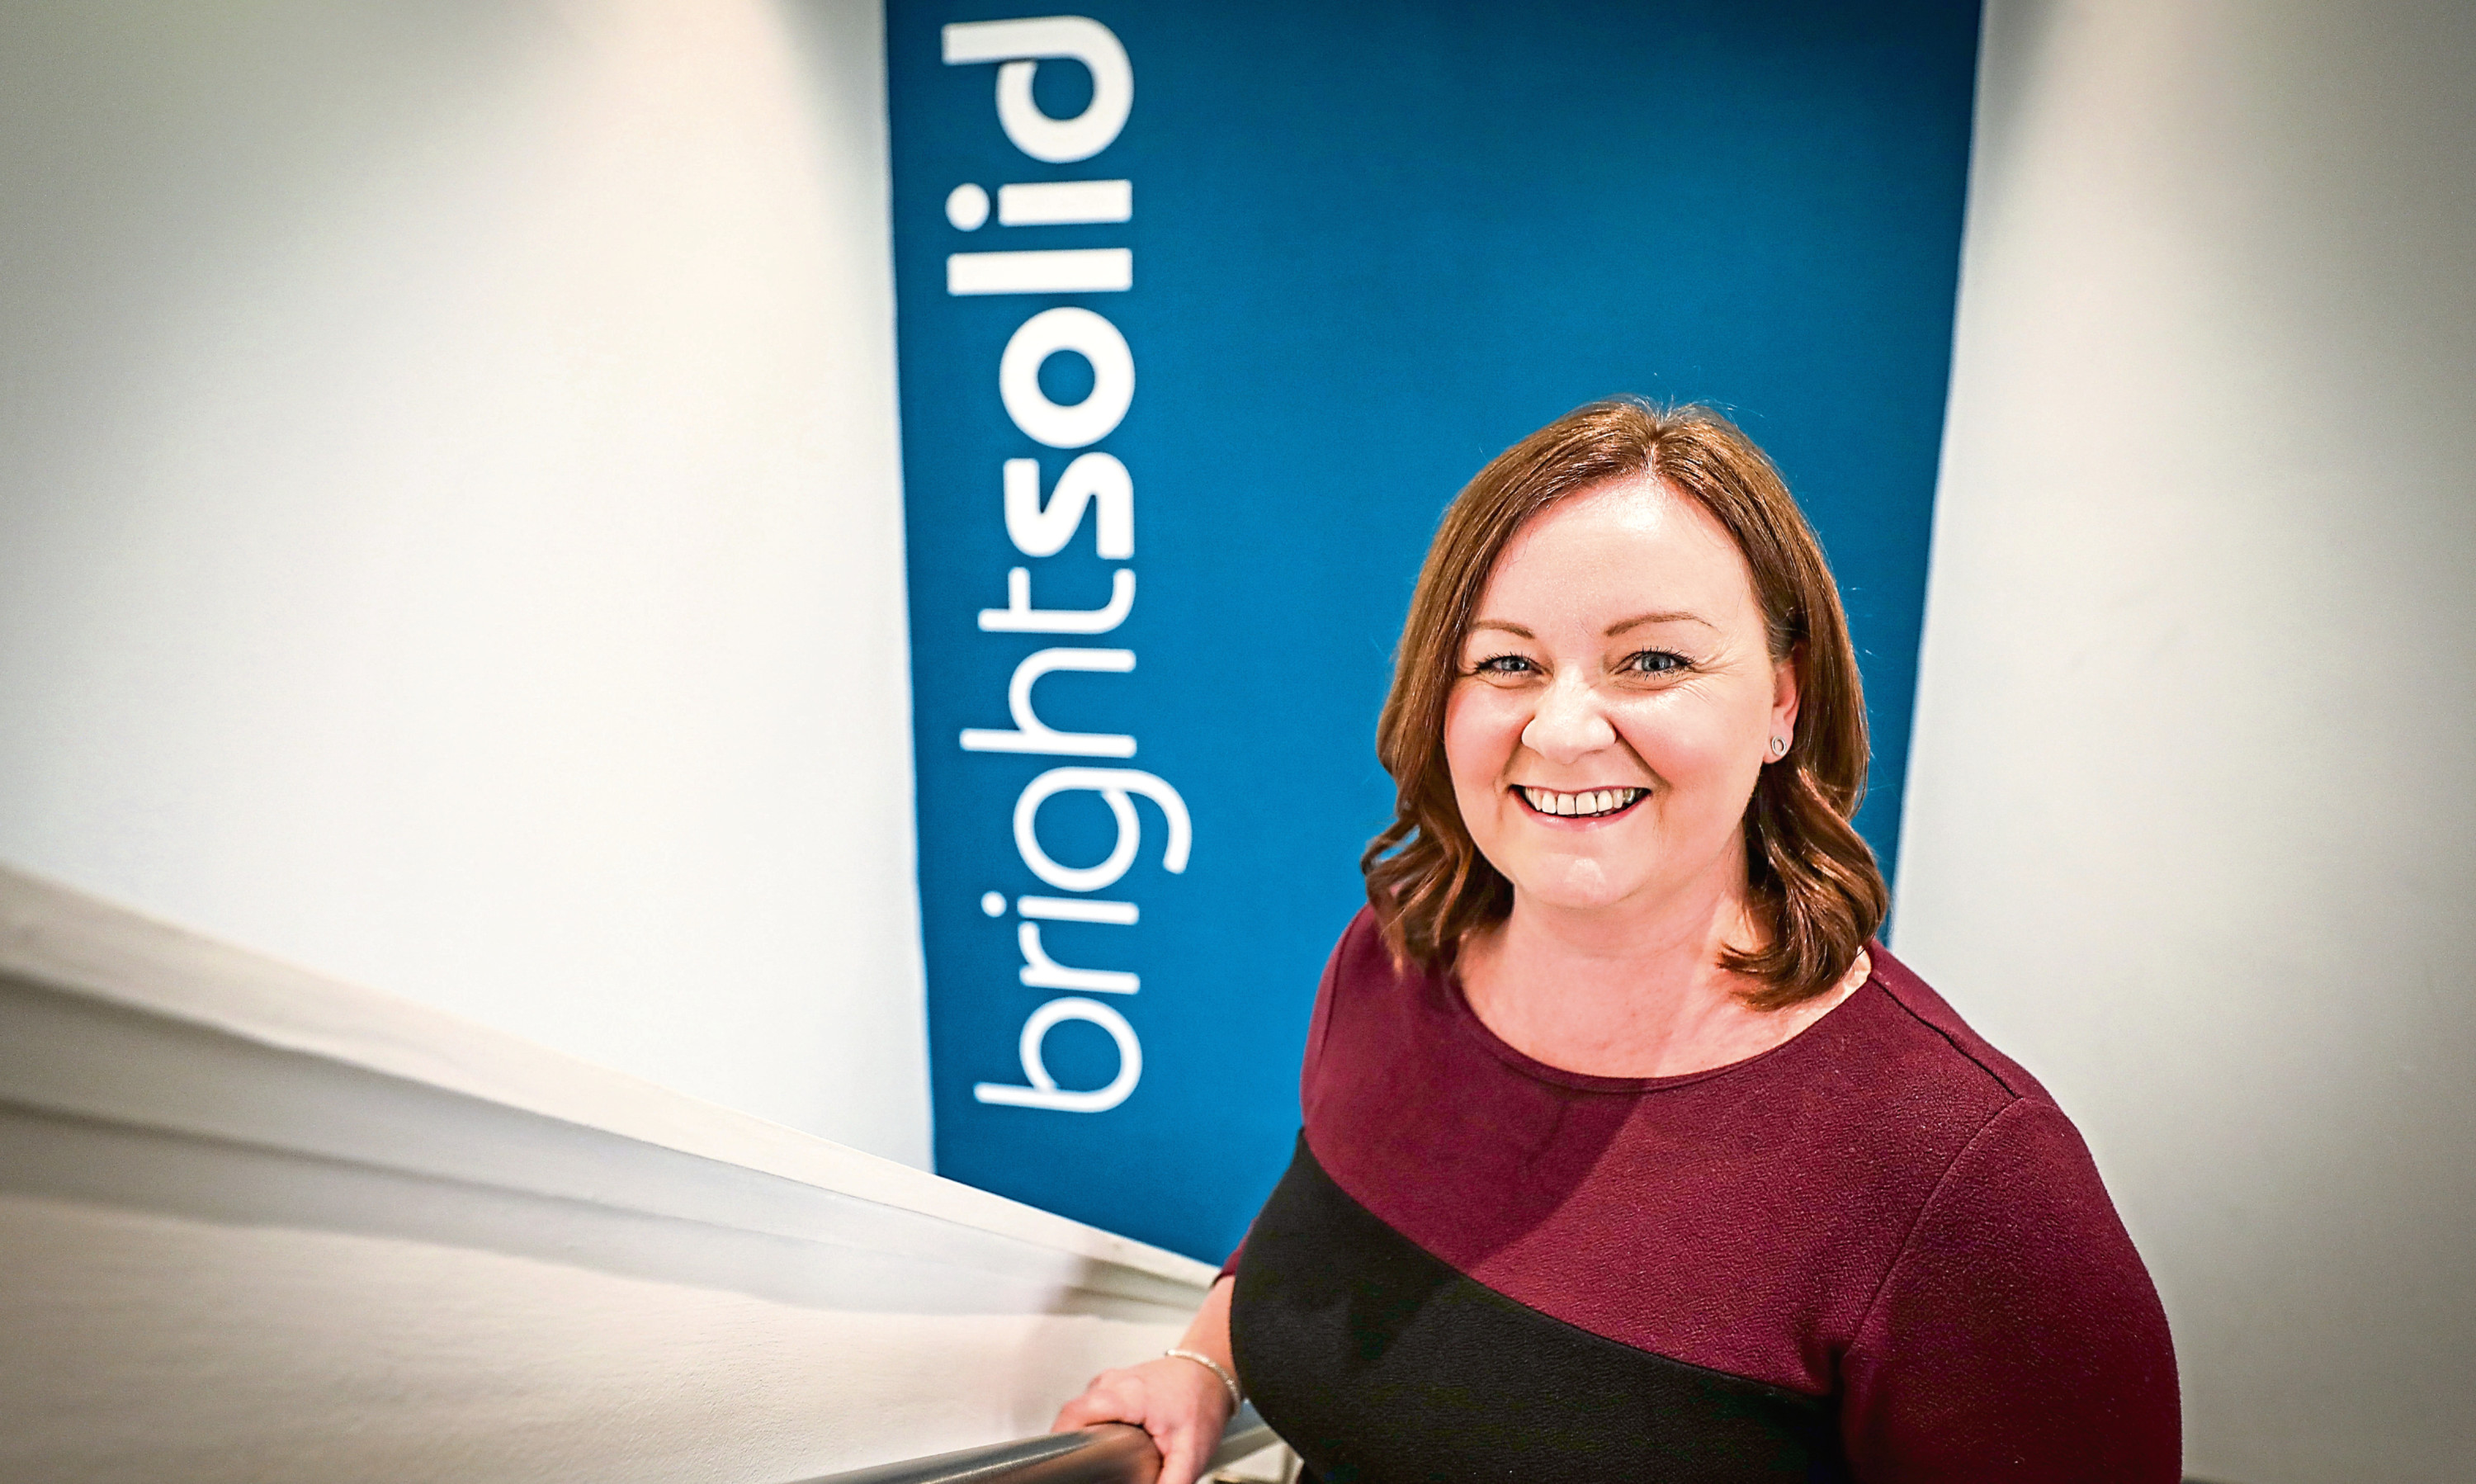 Brightsolid chief executive Elaine Maddison.